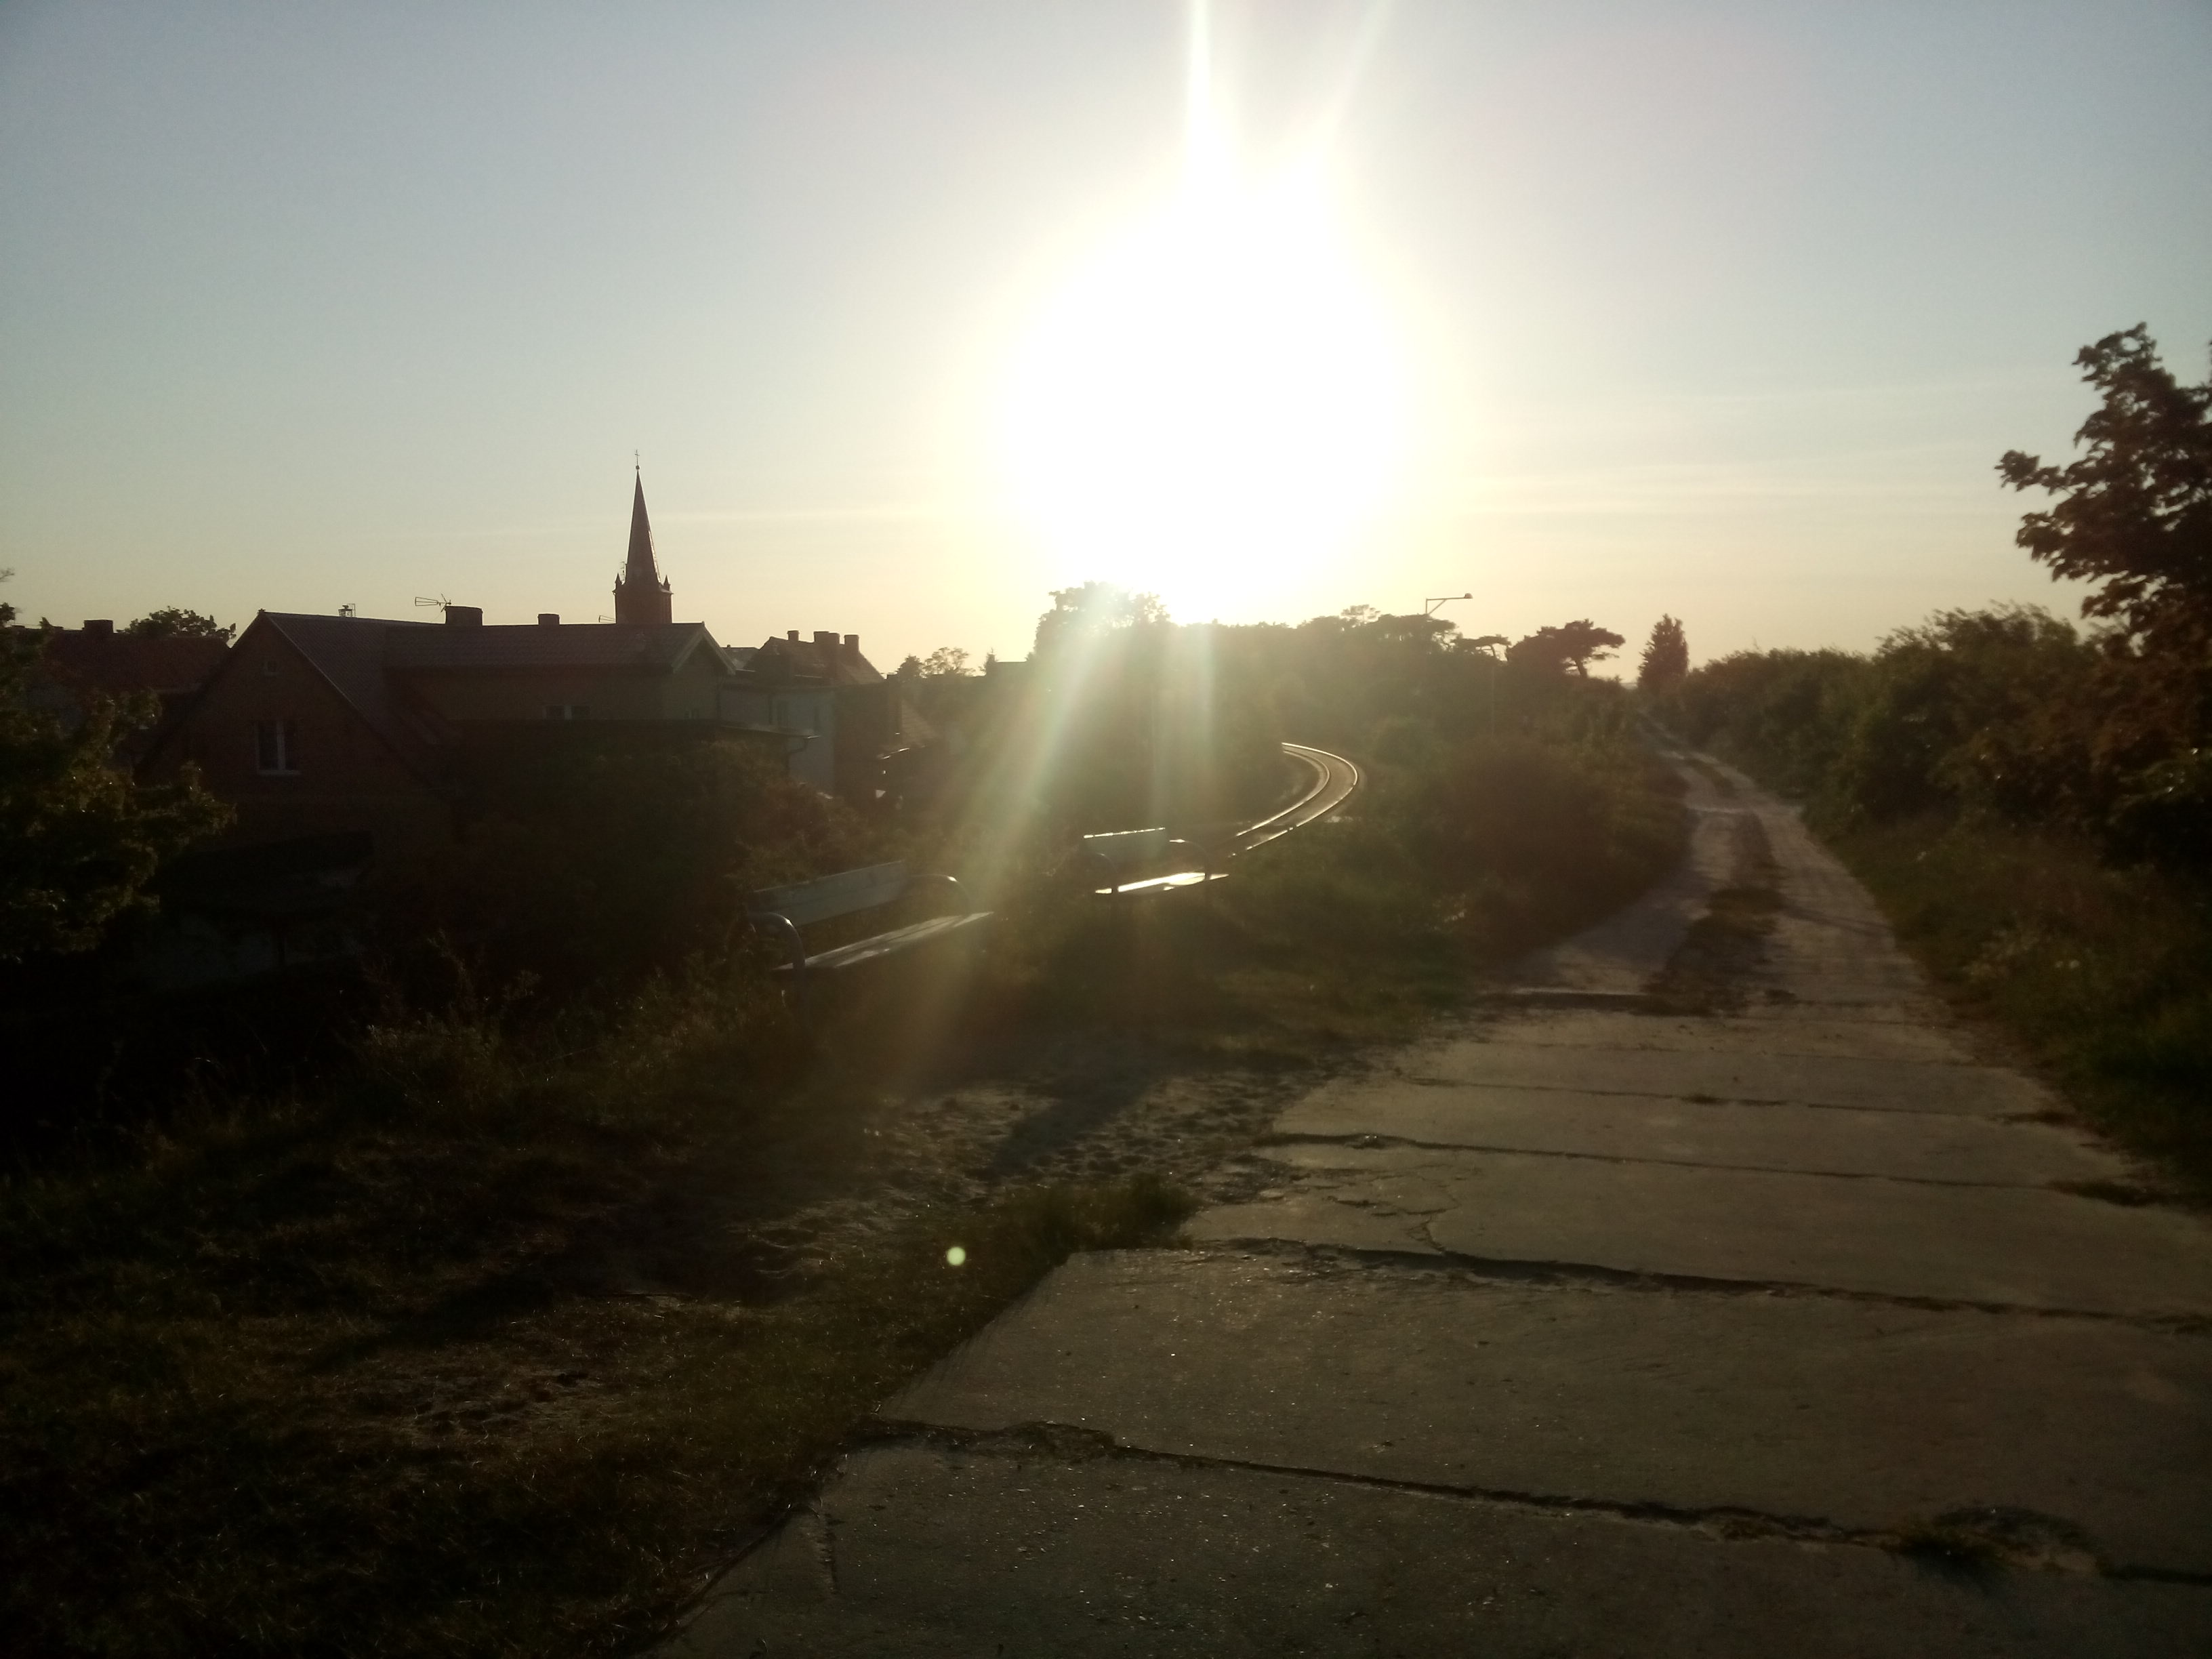 Rough concrete path on the right leading to a sun setting over a town with a church spire